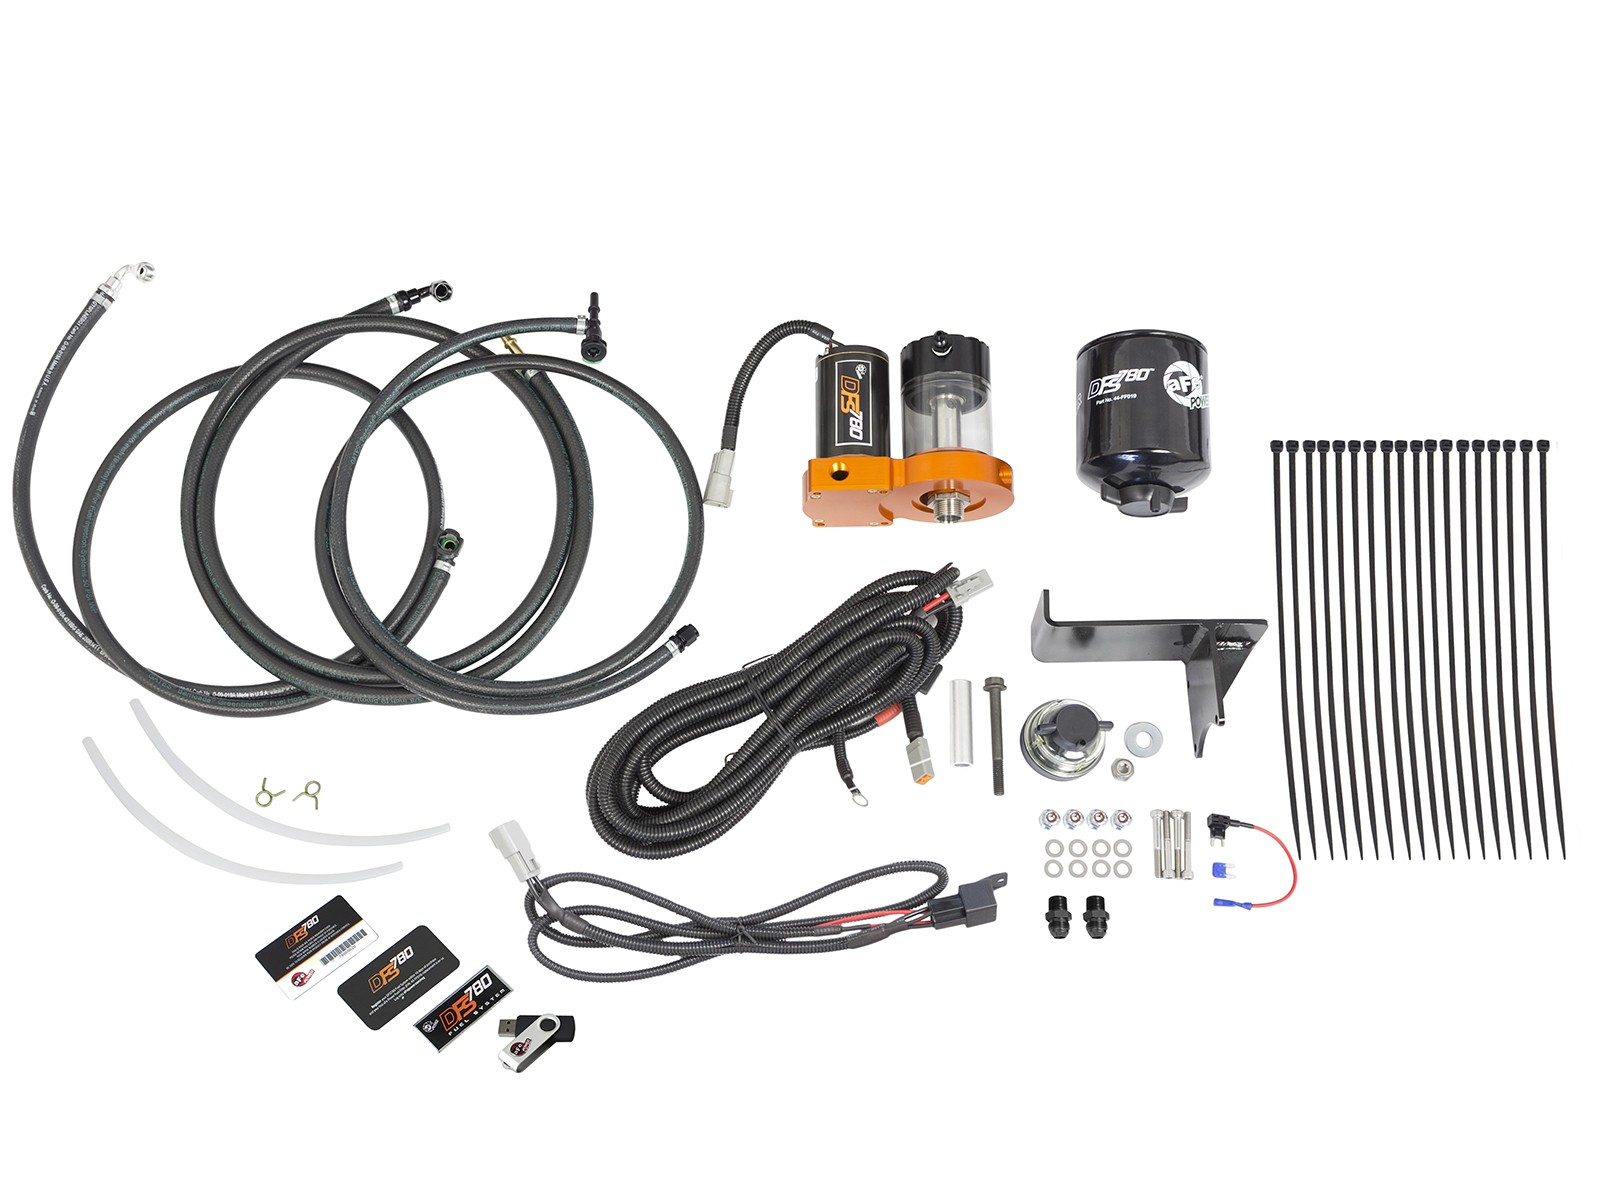 13-16 6.7L Dodge Cummins AFE DFS780 Fuel System